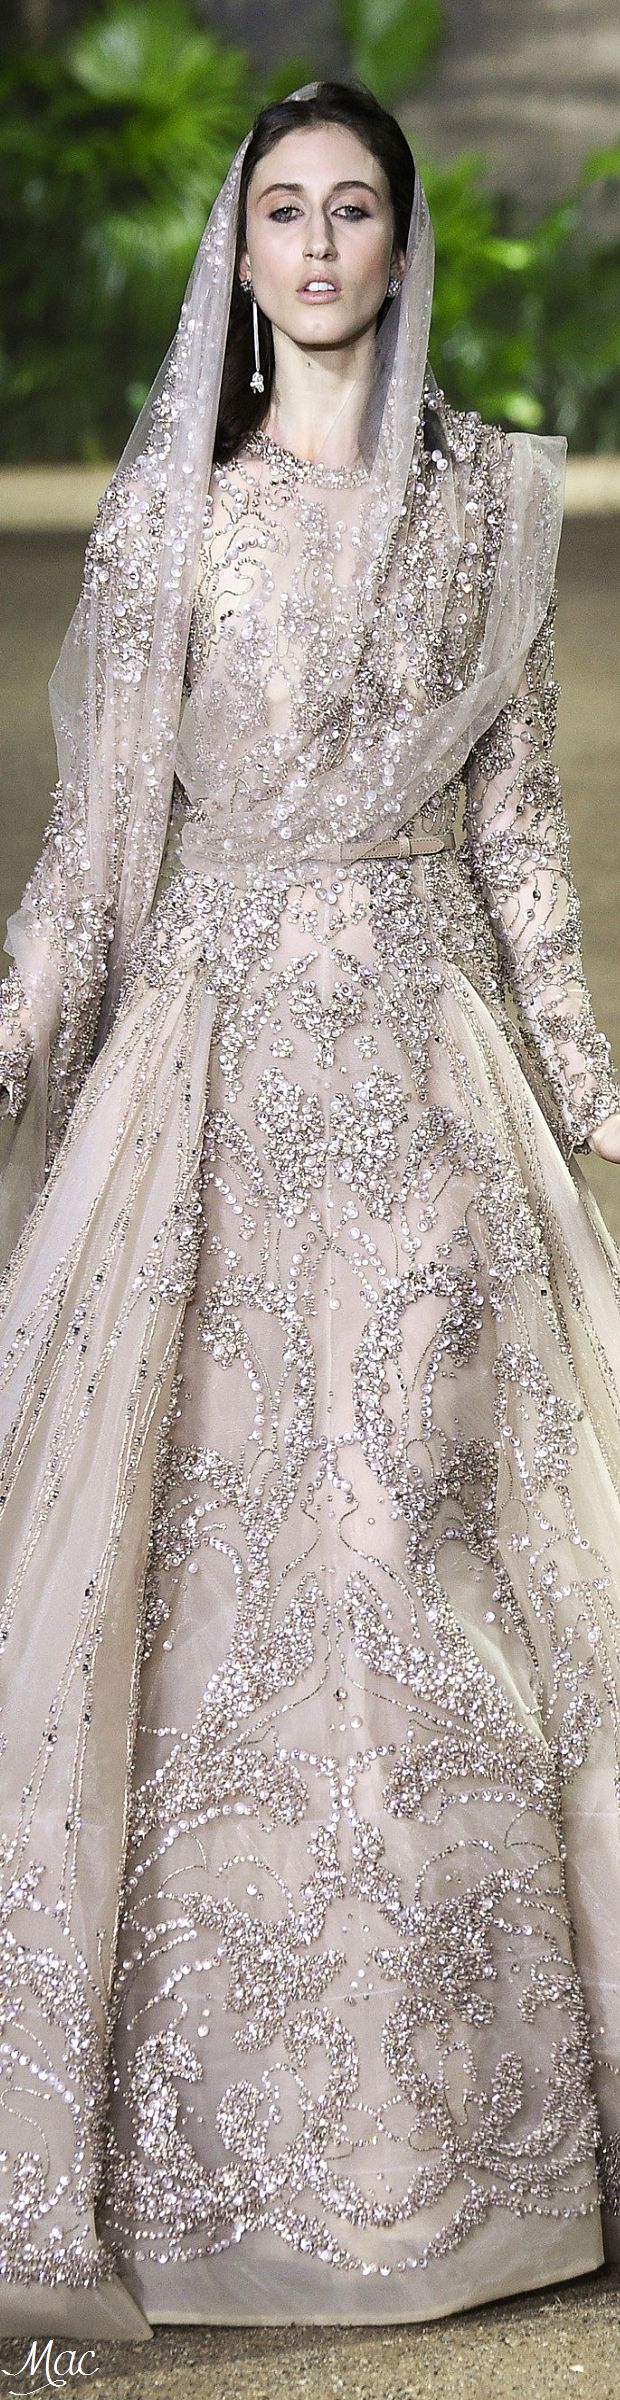 Spring 2016 Haute Couture Elie Saab Clothing, Shoes & Jewelry: http://amzn.to/2iTBsa9